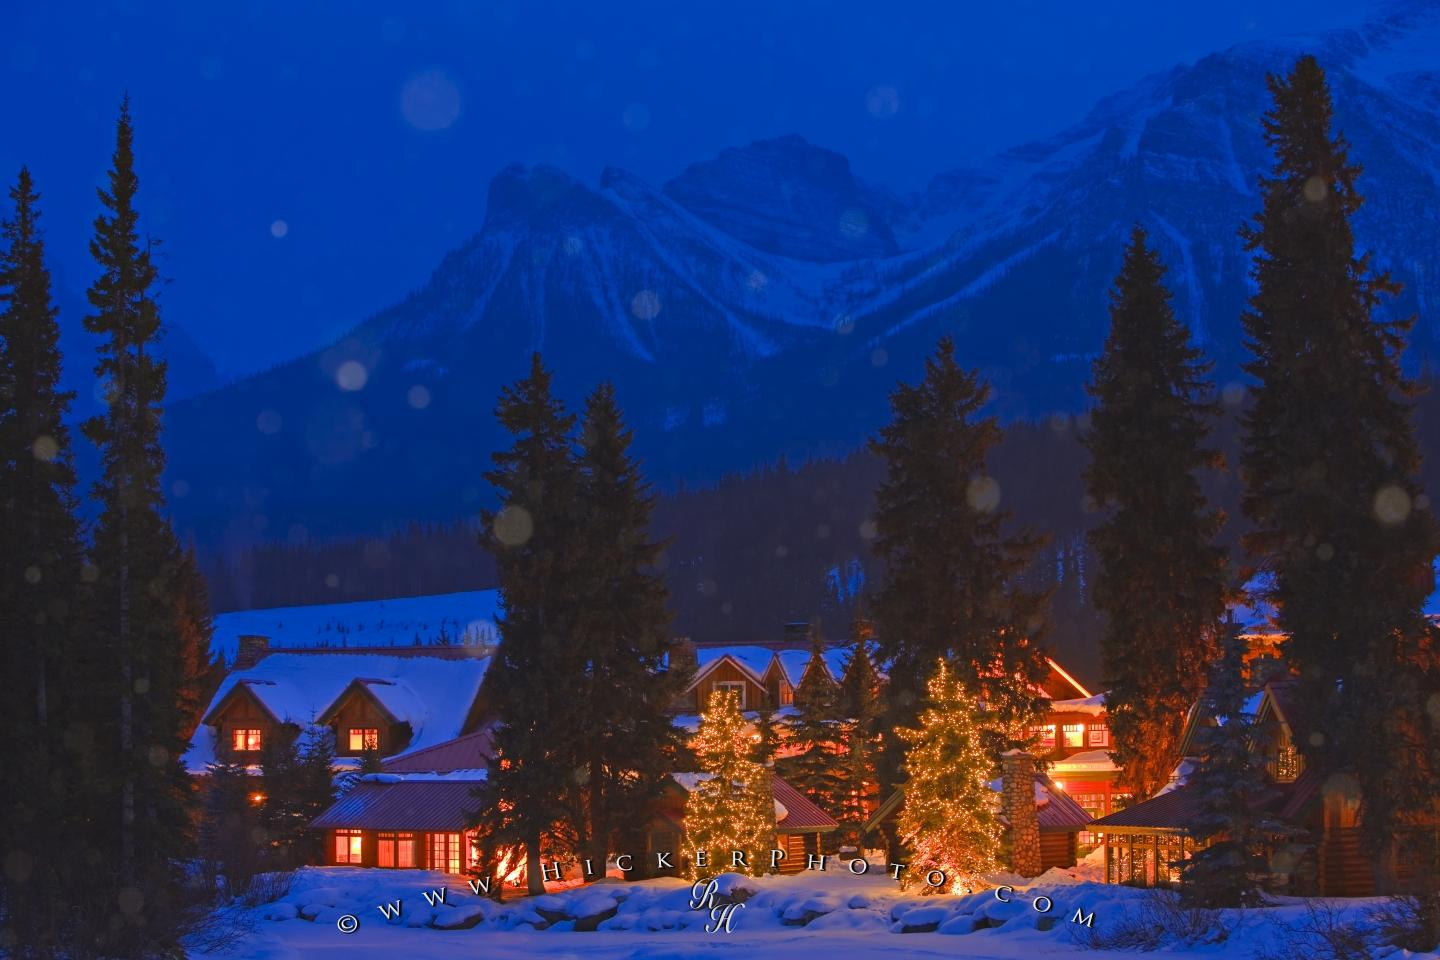 Winter Snow Fall Night Scene Lake Louise Alberta